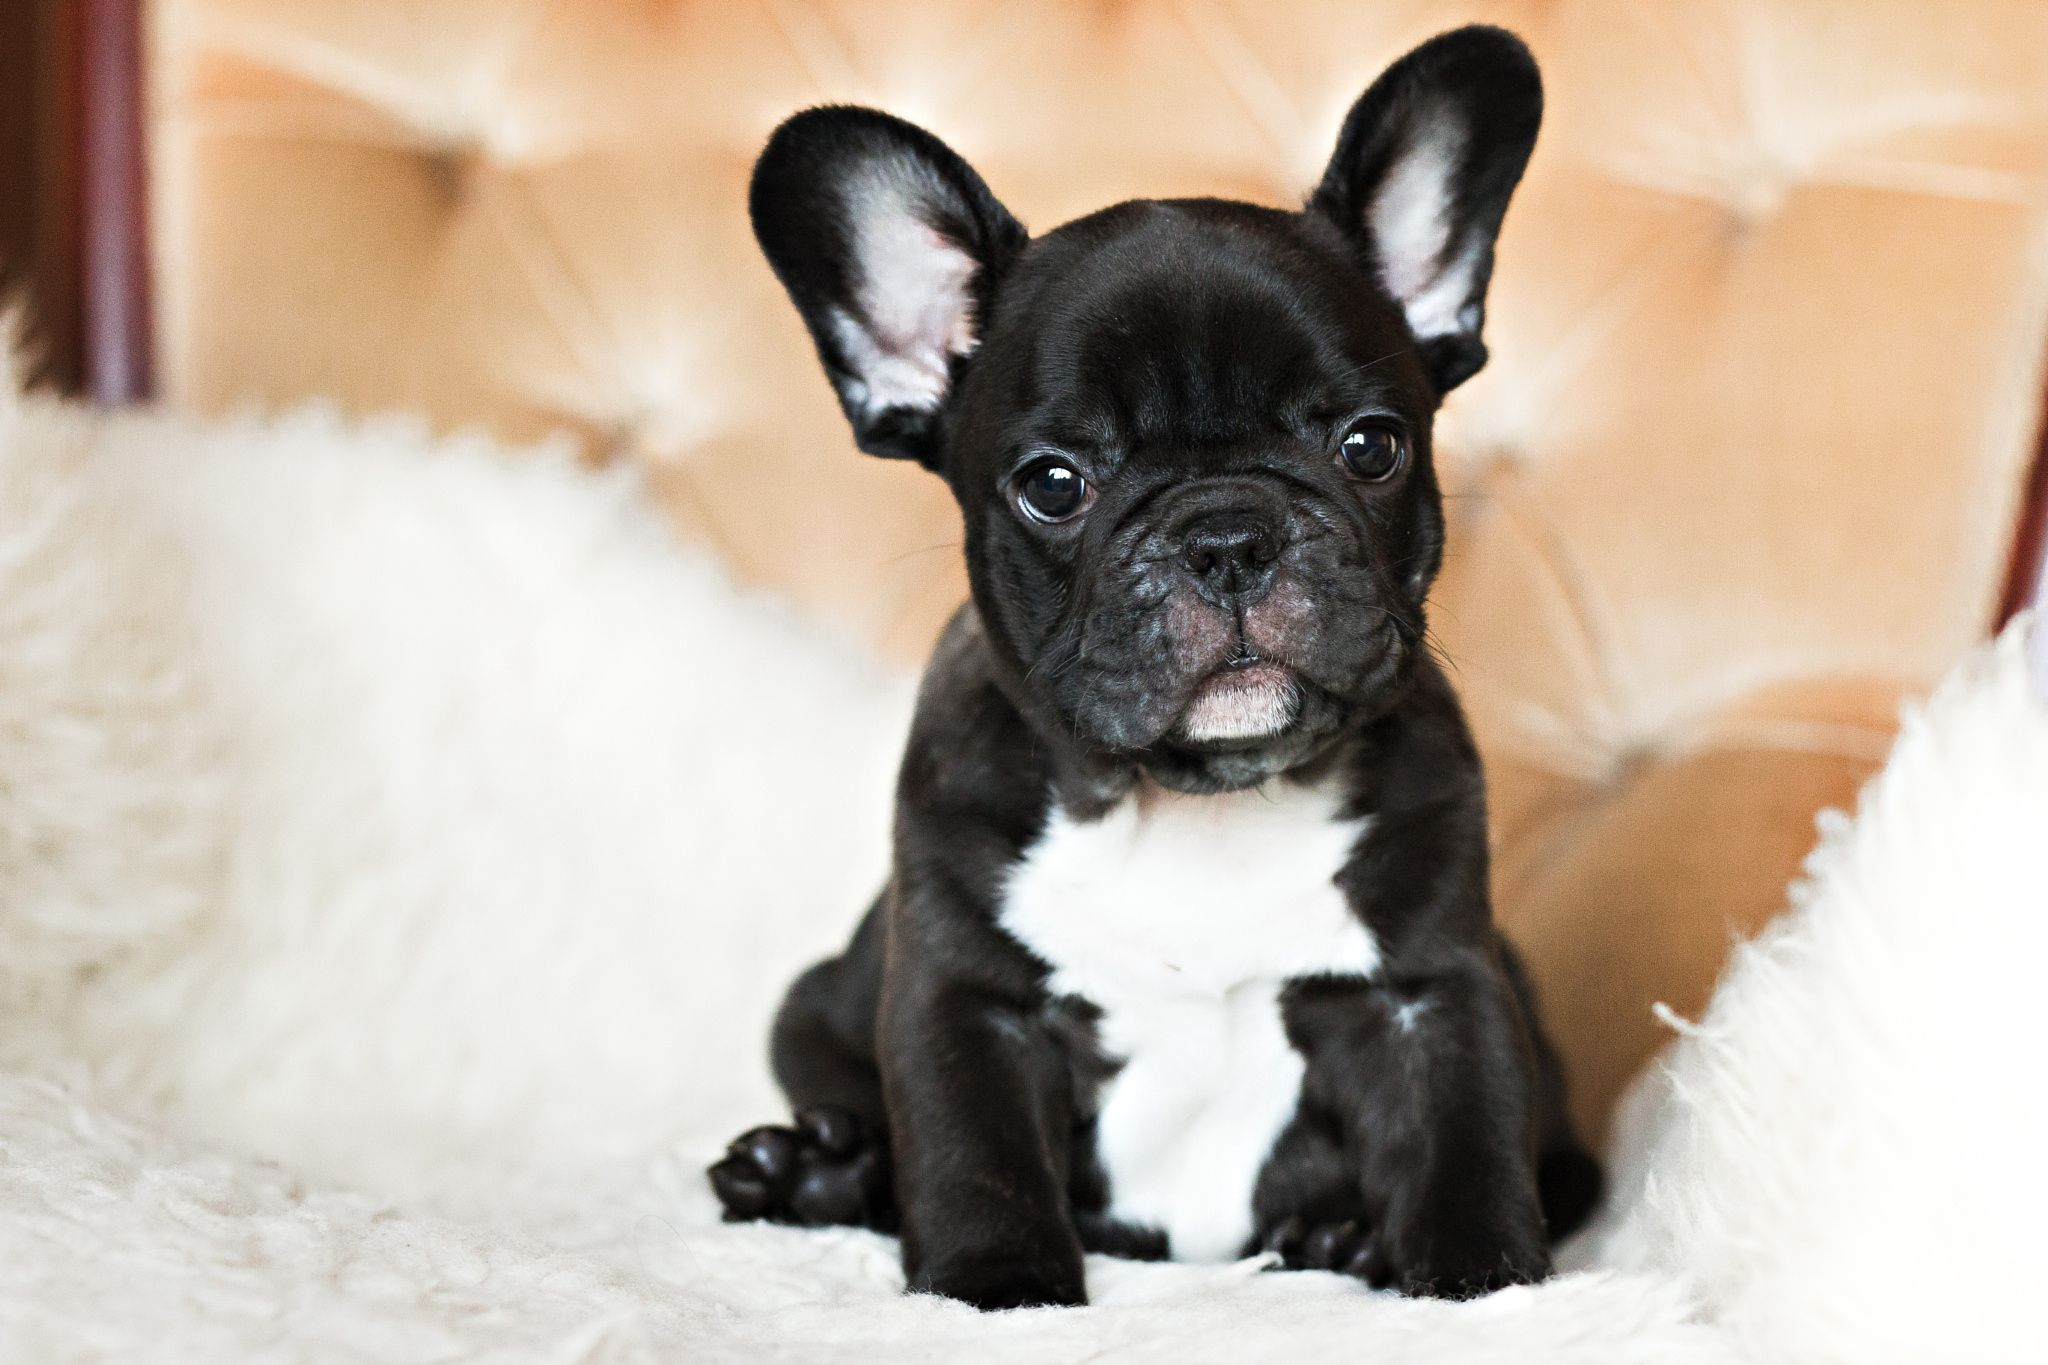 Morris Kittens and puppies, French bulldog puppies